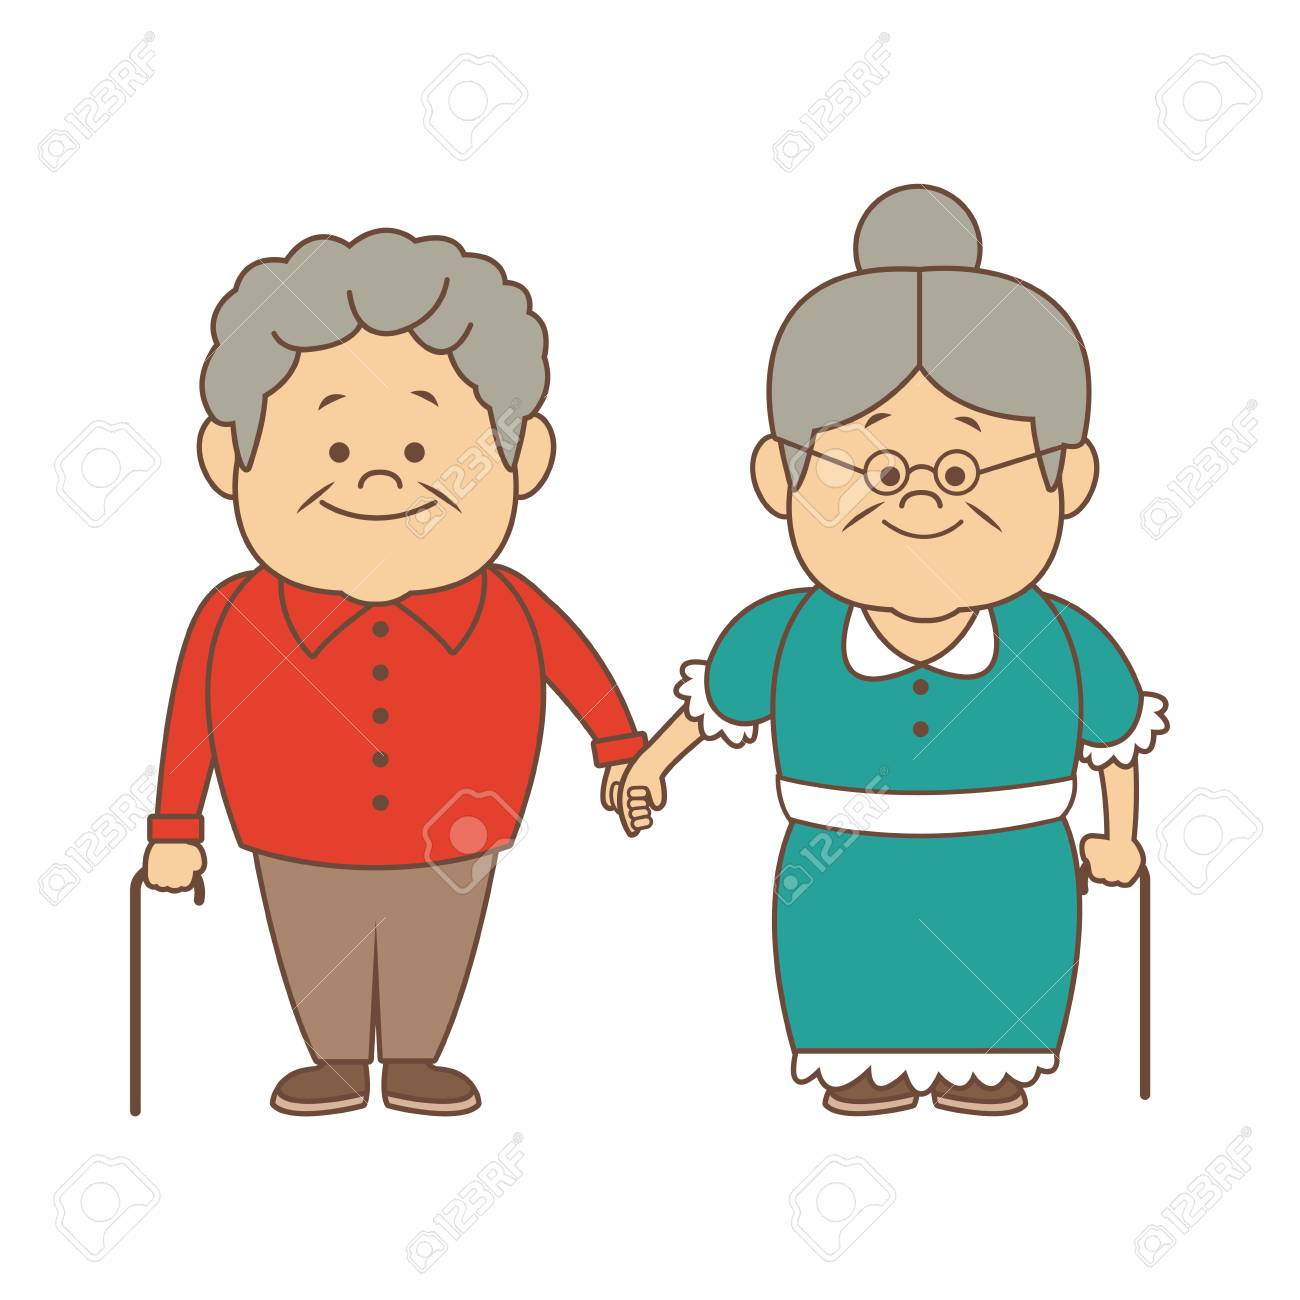 royalty free library Grandparent clipart granma. Happy grandparents holding hands